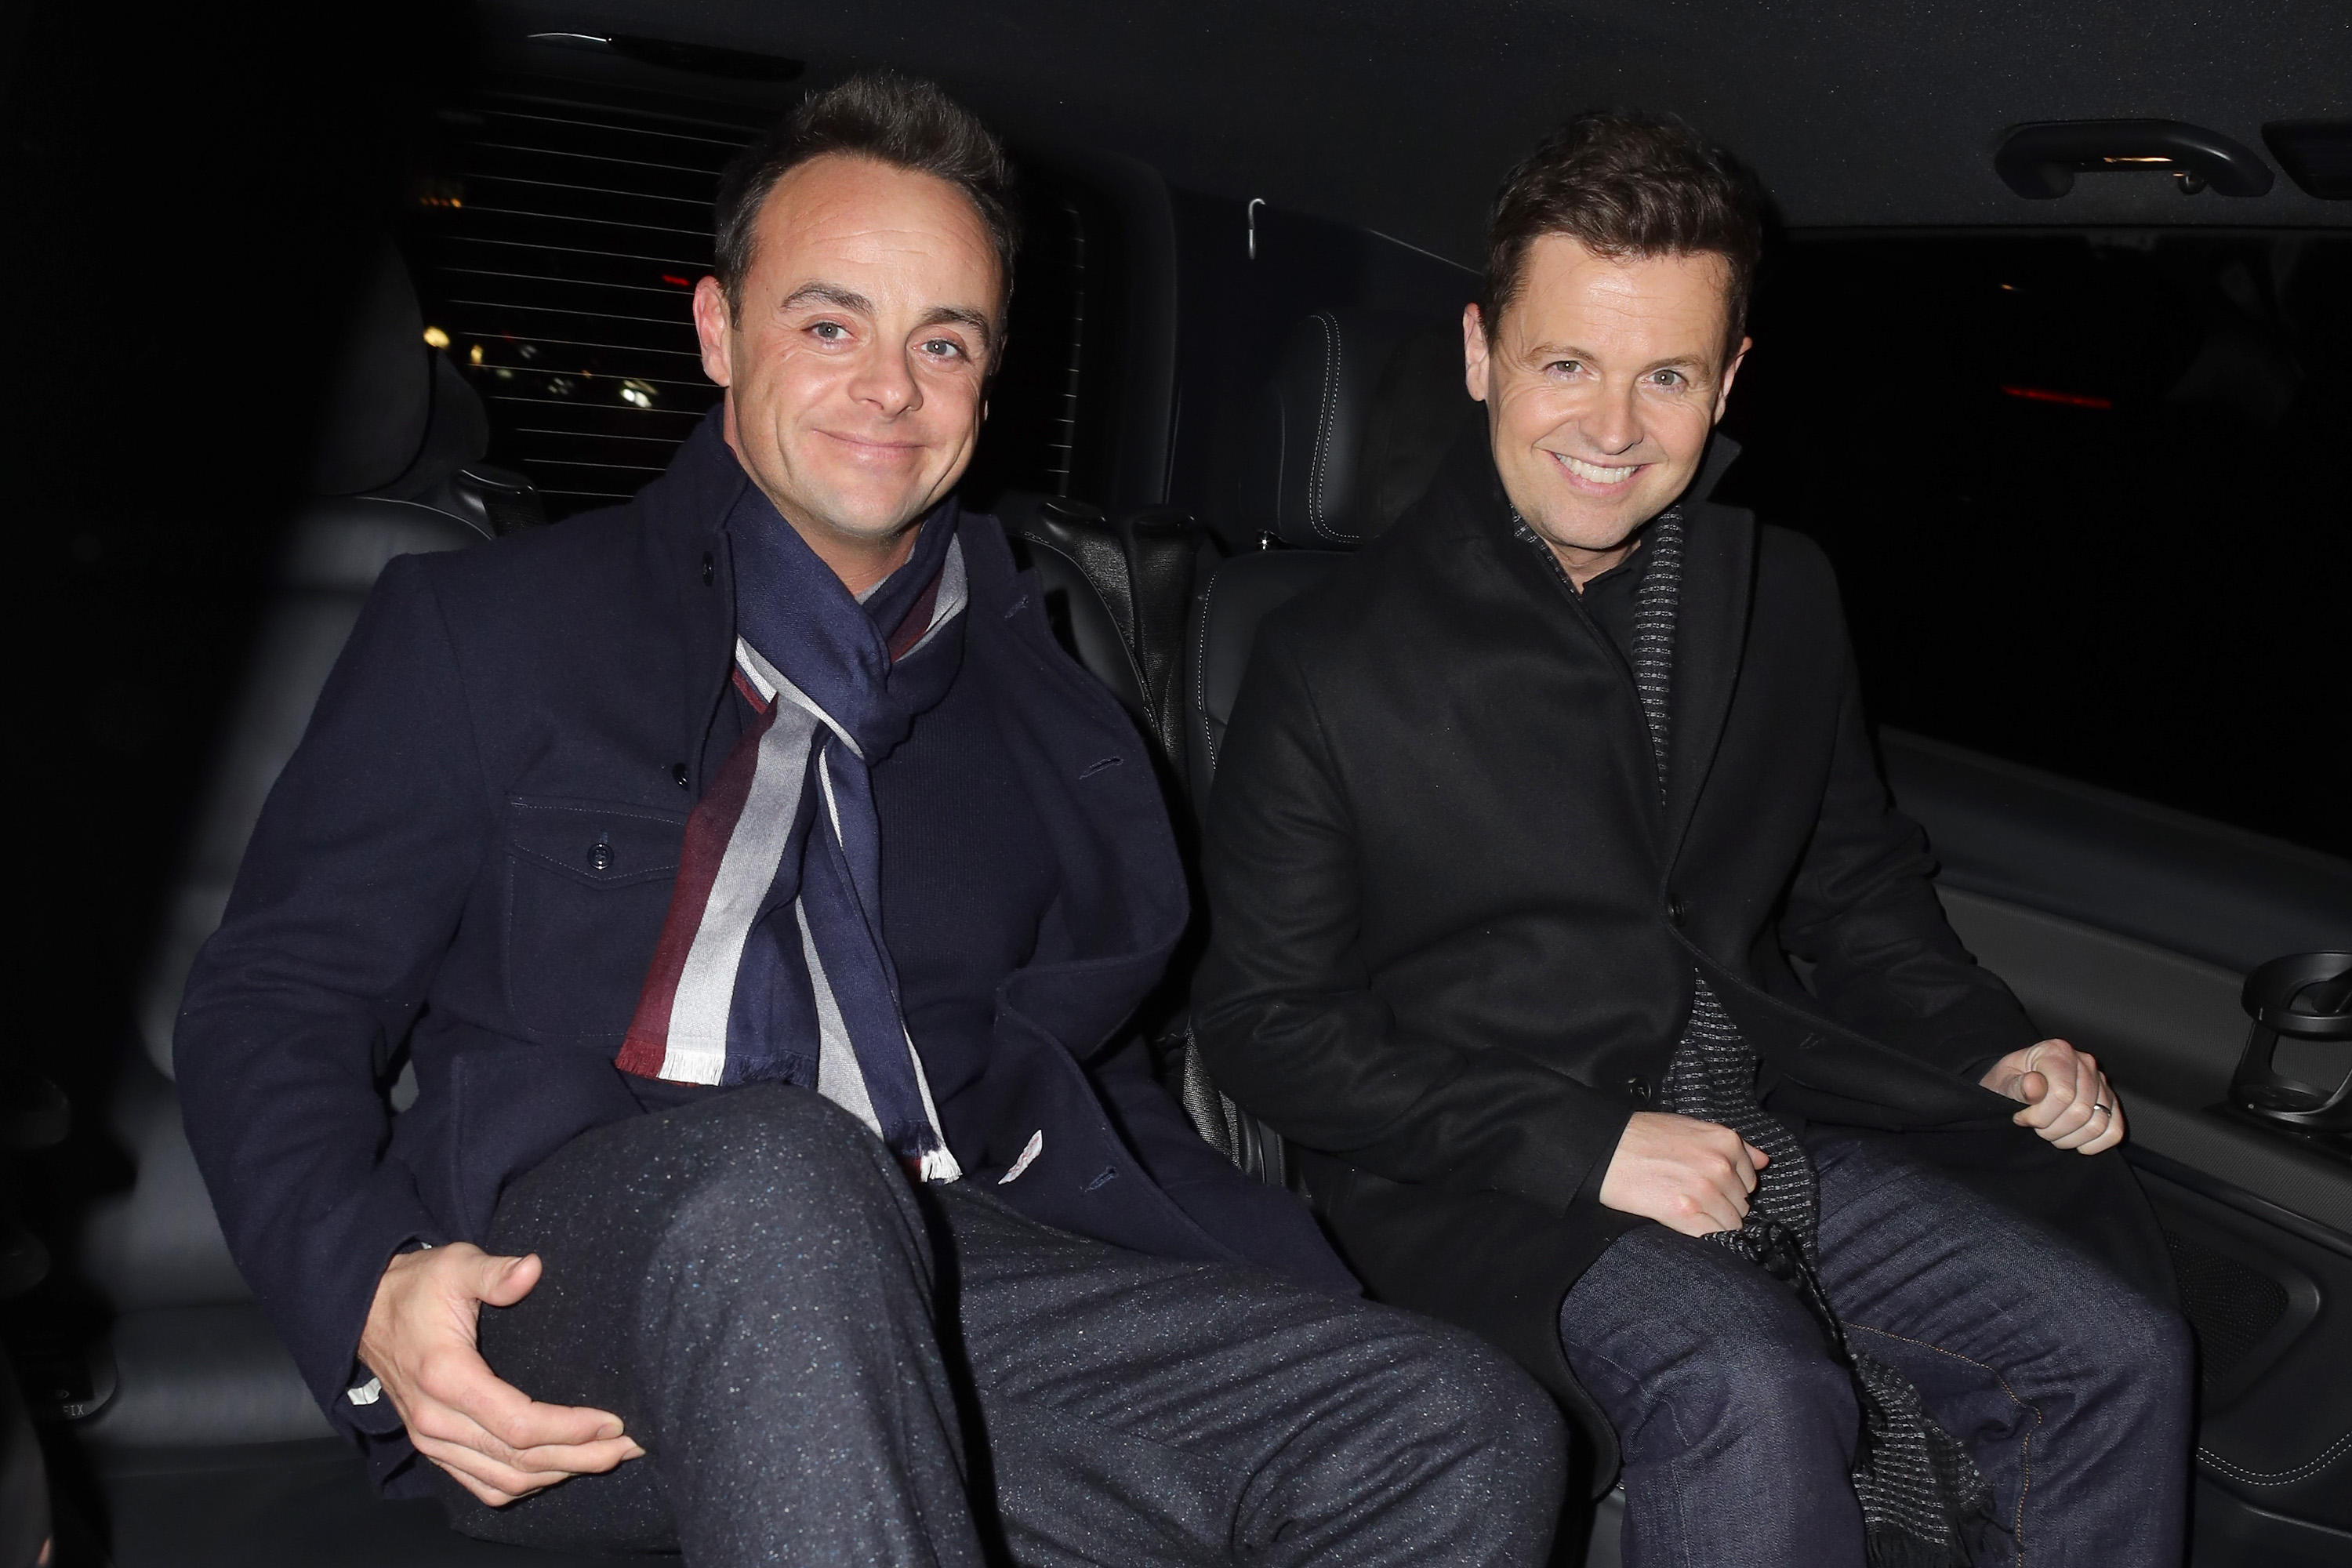 Ant and Dec mock Amanda Holden as they recreate sultry shower photo